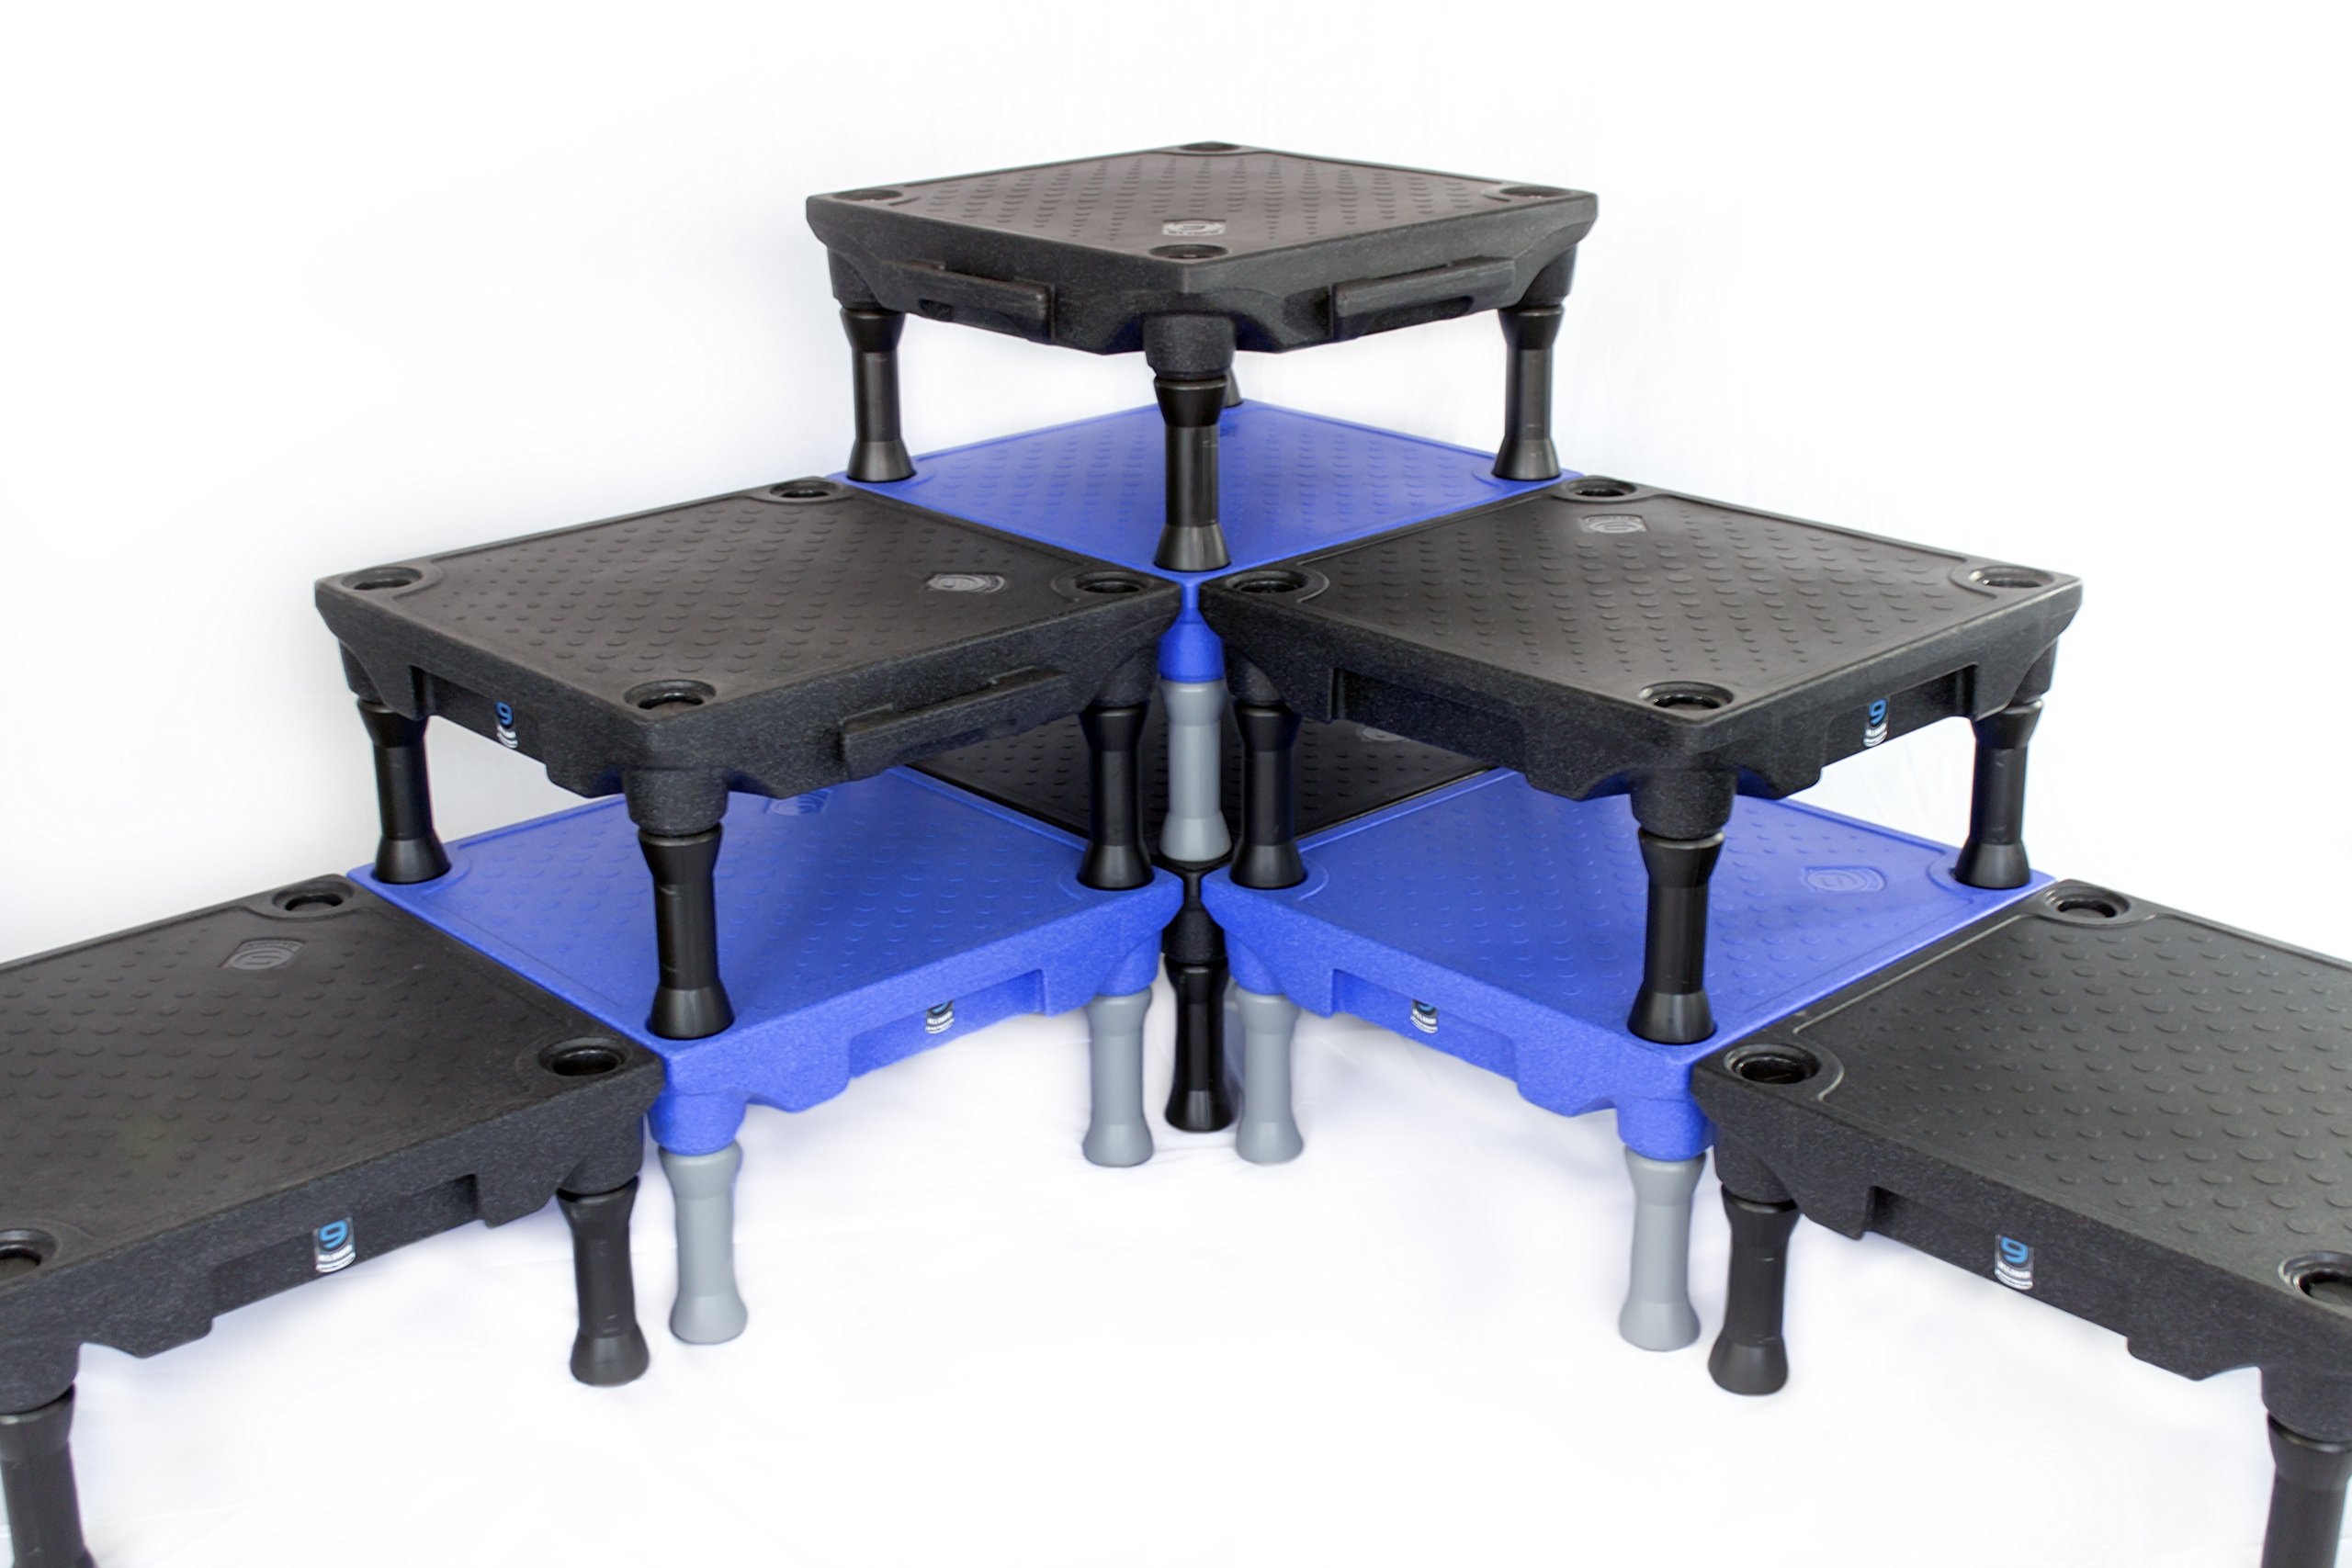 Blue-9 Pet Products The KLIMB Dog Training Platform and Agility System (Blue) by Blue-9 Pet Products (Image #6)